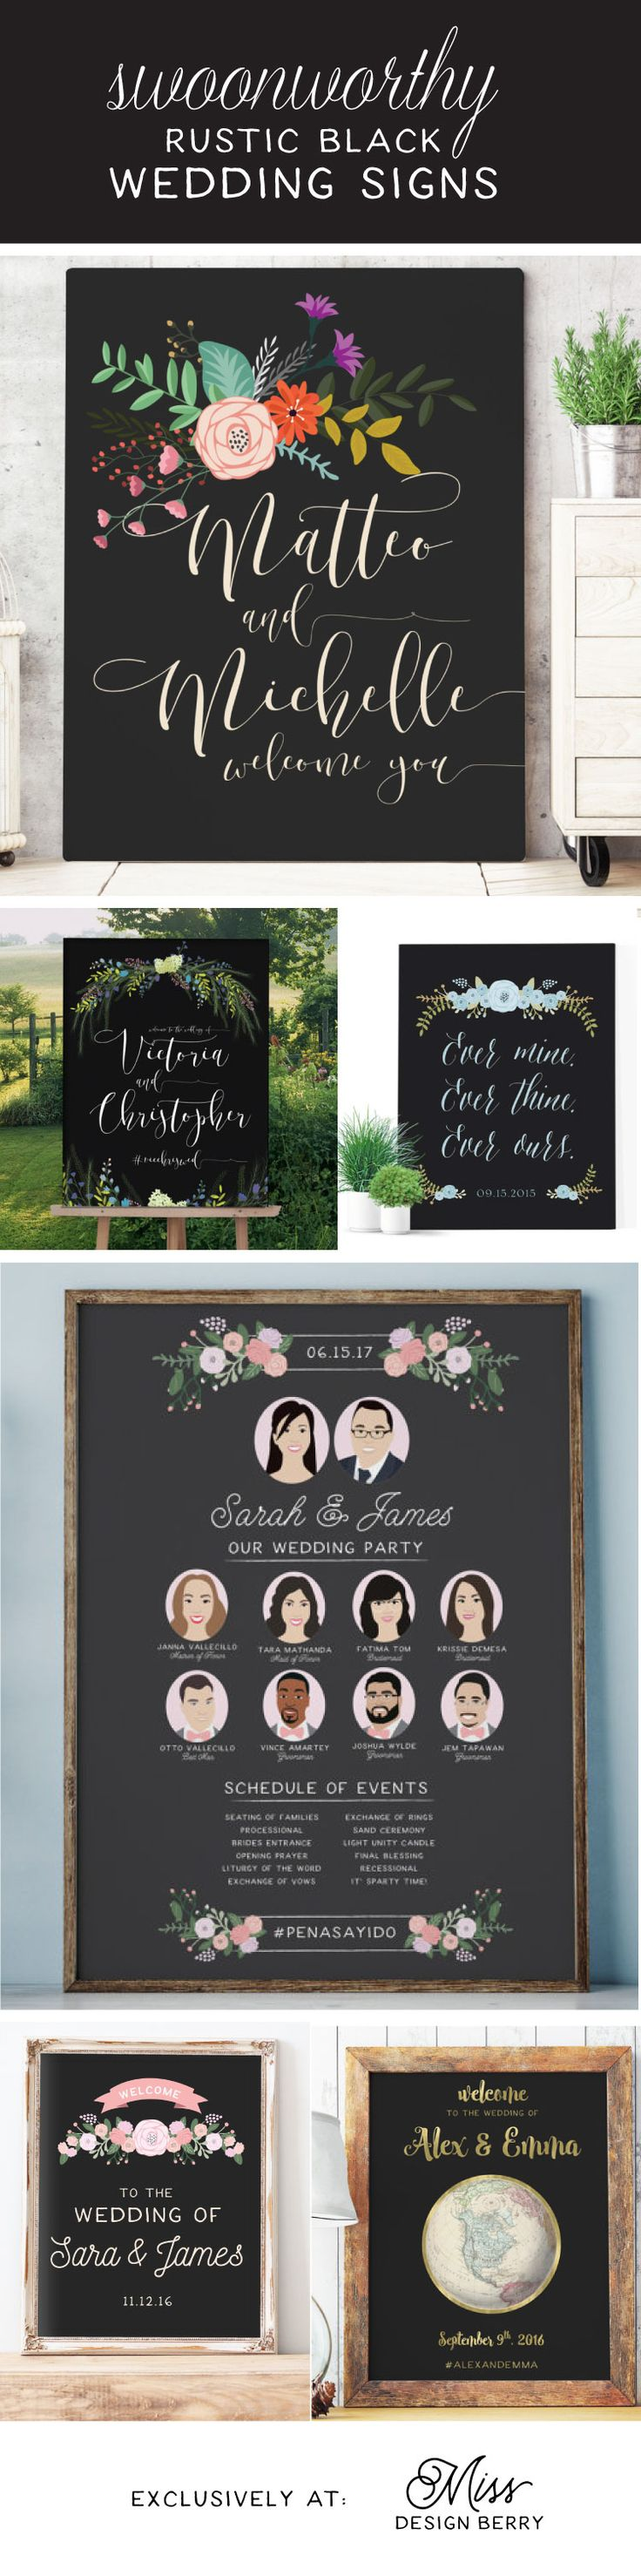 Rustic black wedding signs to make you swoon!